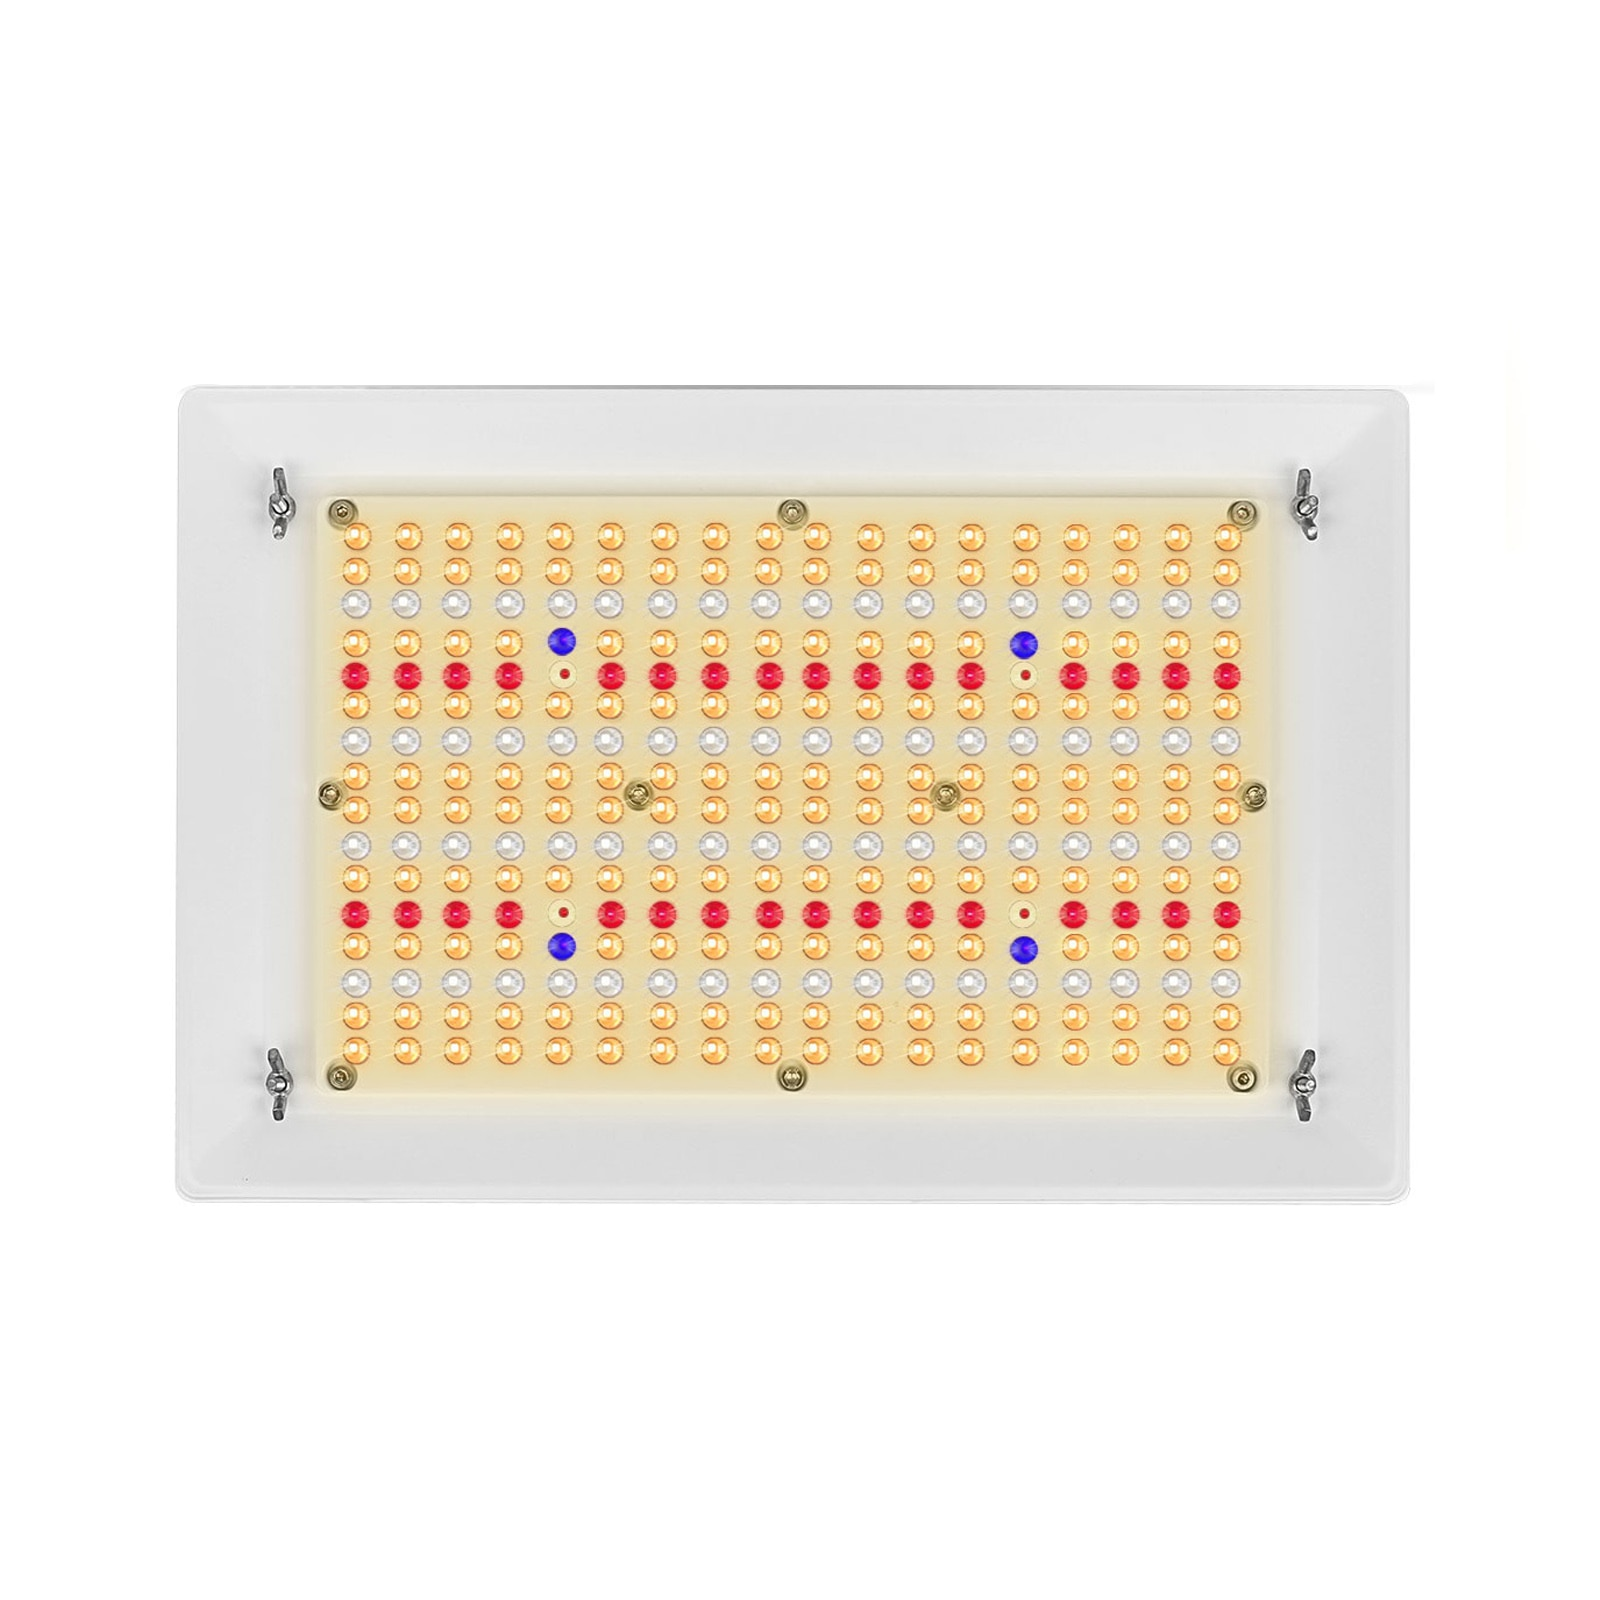 LED Grow Light 3x2ft Samsung LM281B+  Full Spectrum Plants Growing  Lamp for Hydroponic Indoor Seeding Veg and Bloom Greenhouse